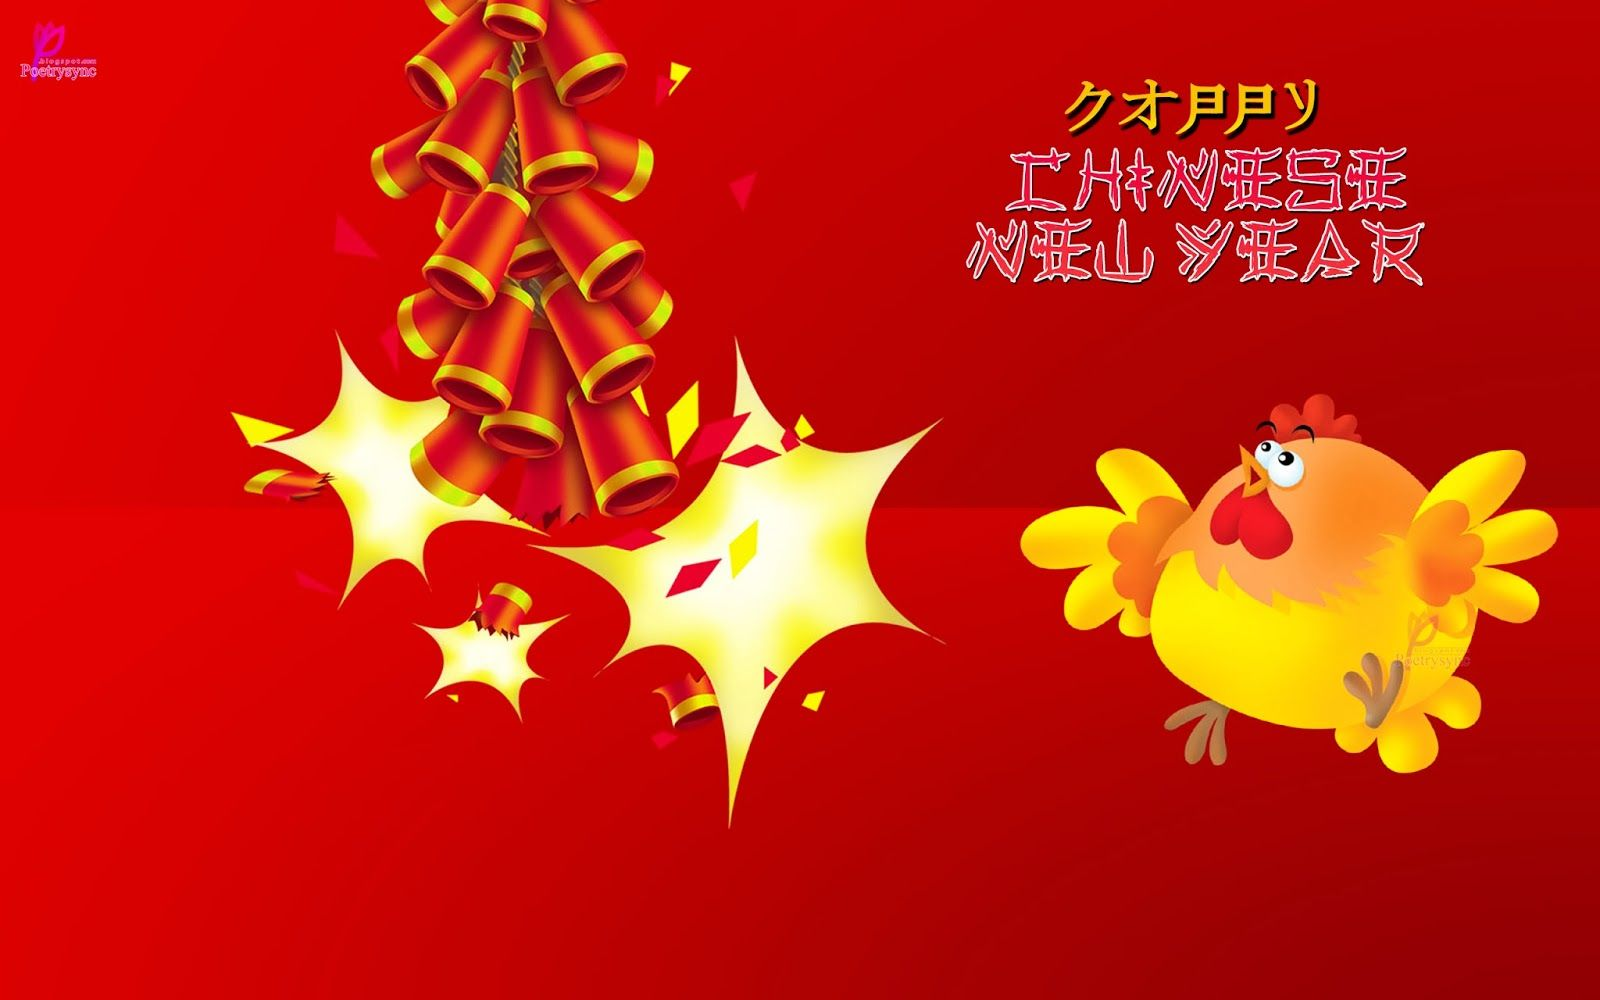 Chinese New Year Wishes Image Wallpaper Happy Lunar New Year Card